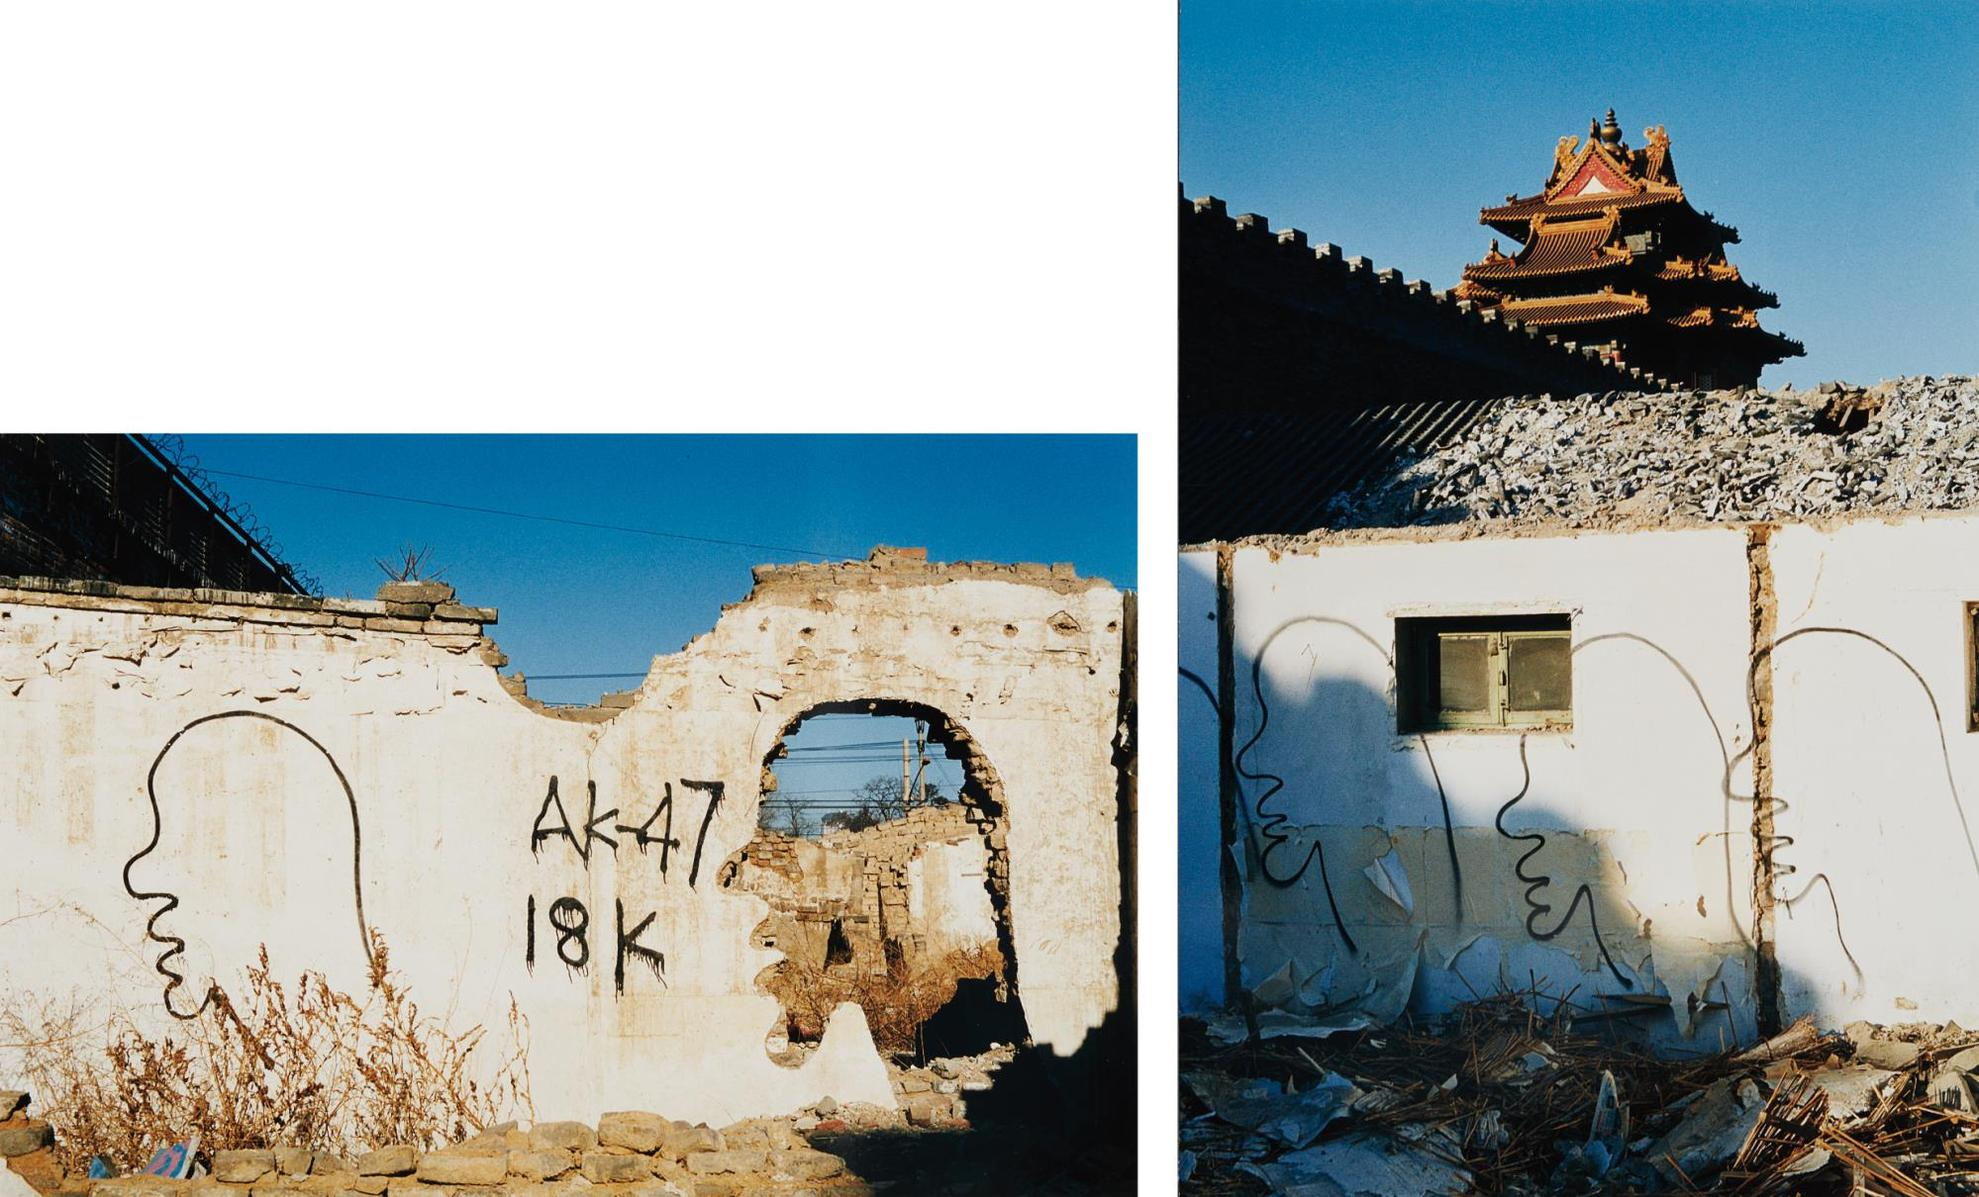 Zhang Dali-Demolition And Dialogue, Chaoyangmenwai Avenue, Beijing And Dialogue, Forbidden City, Beijing-1998